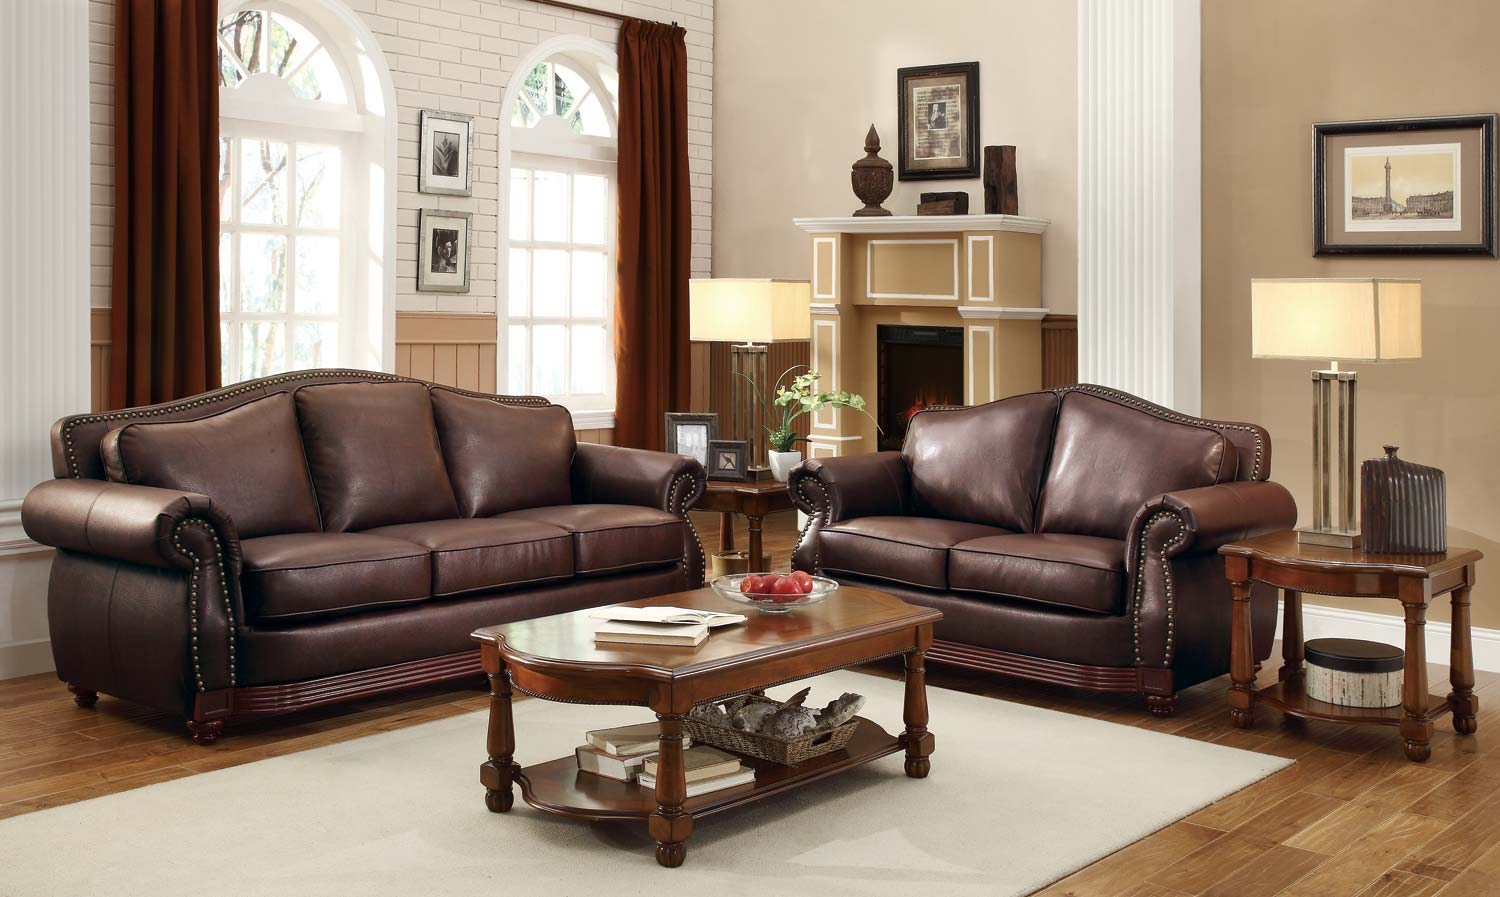 Ashley Furniture Bedroom Suites Homelegance Midwood Bonded Leather Sofa Collection Dark